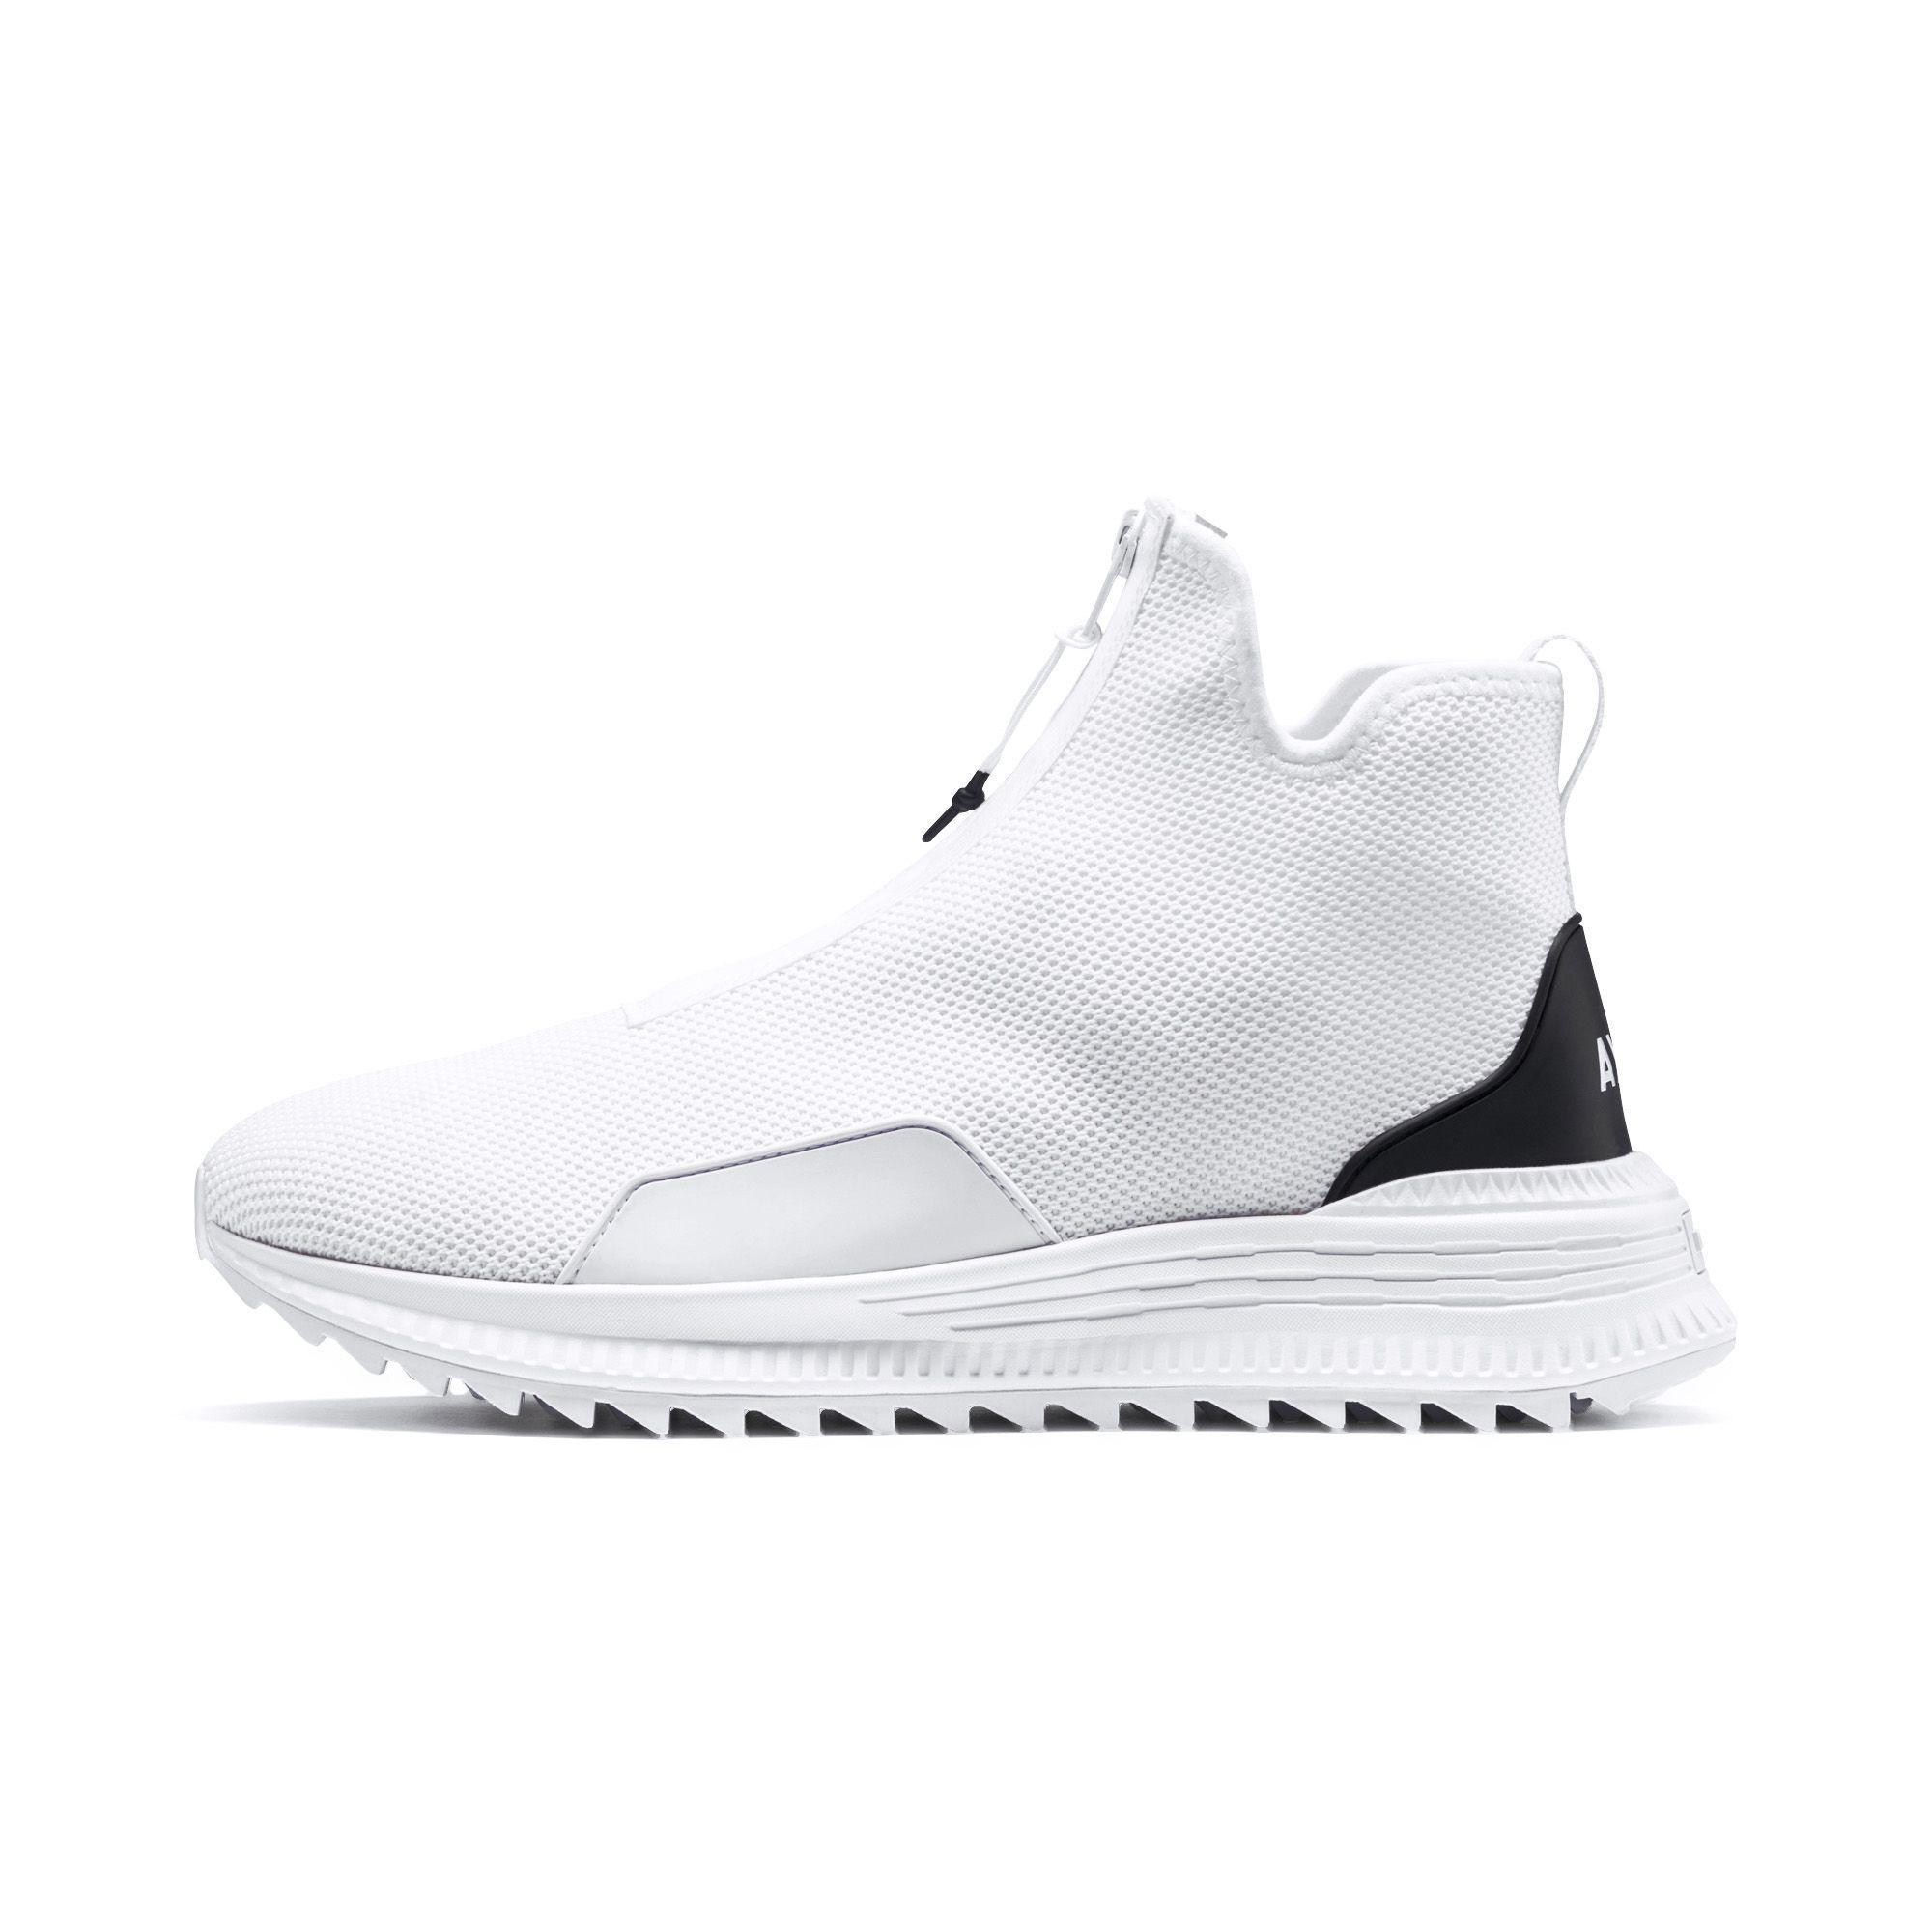 1184c37437580 PUMA White X Outlaw Moscow Avid Zip Sneakers